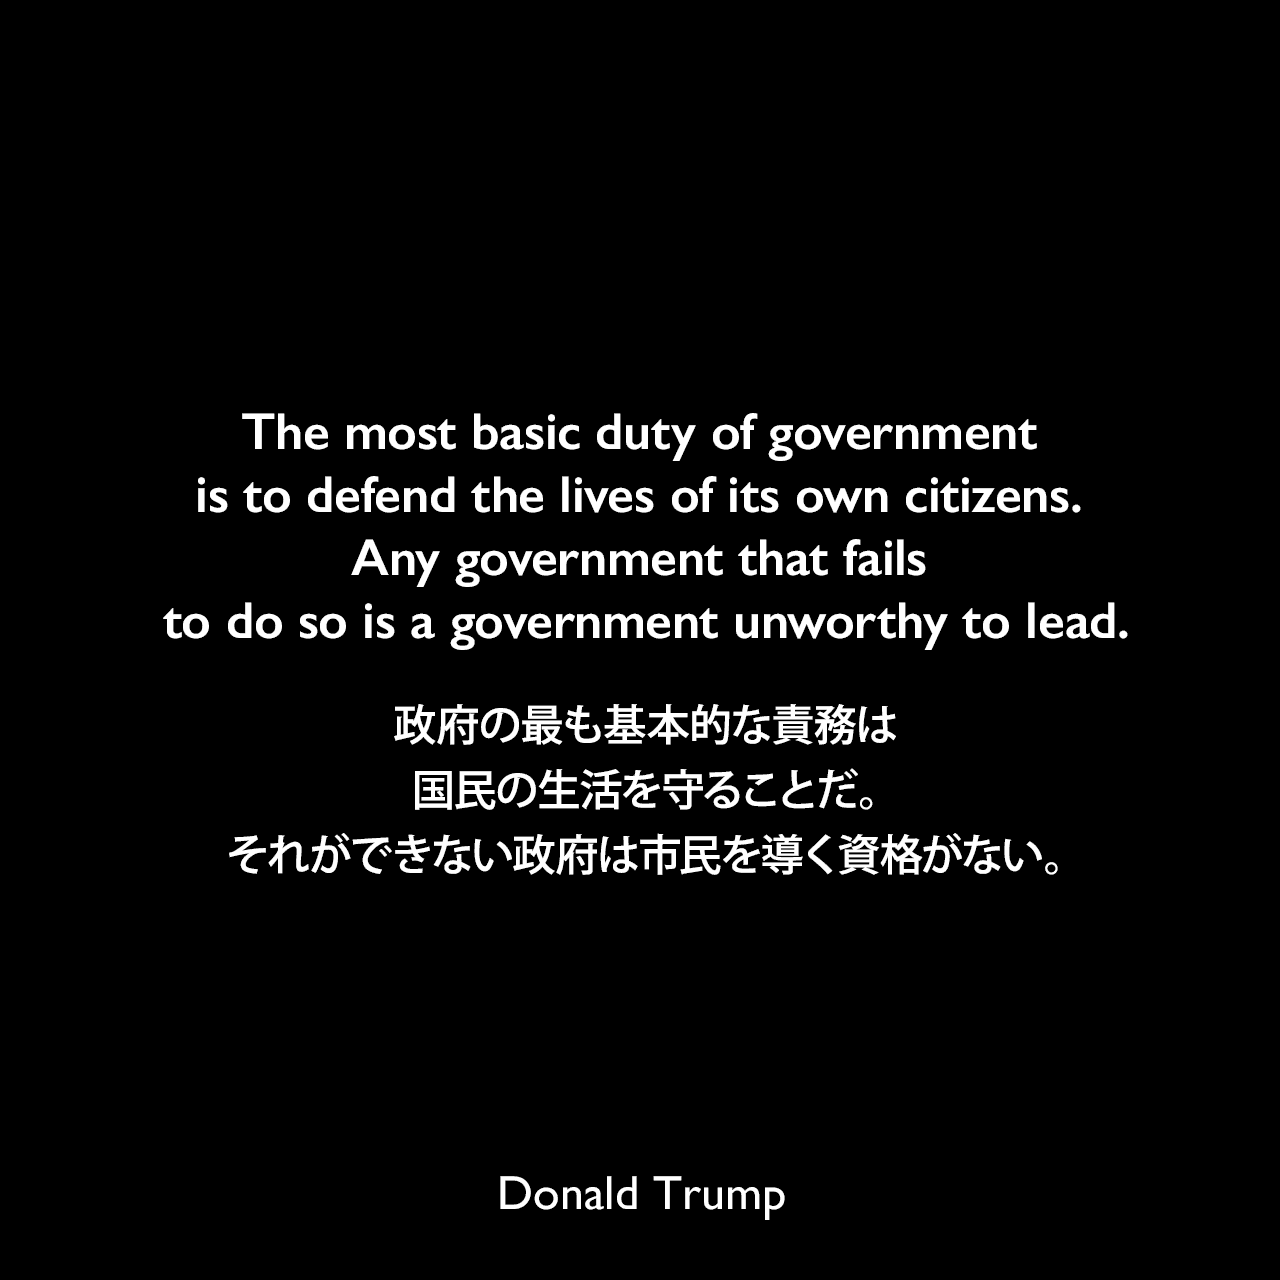 The most basic duty of government is to defend the lives of its own citizens. Any government that fails to do so is a government unworthy to lead.政府の最も基本的な責務は国民の生活を守ることだ。それができない政府は市民を導く資格がない。- 2016年の共和党全国大会スピーチよりDonald Trump